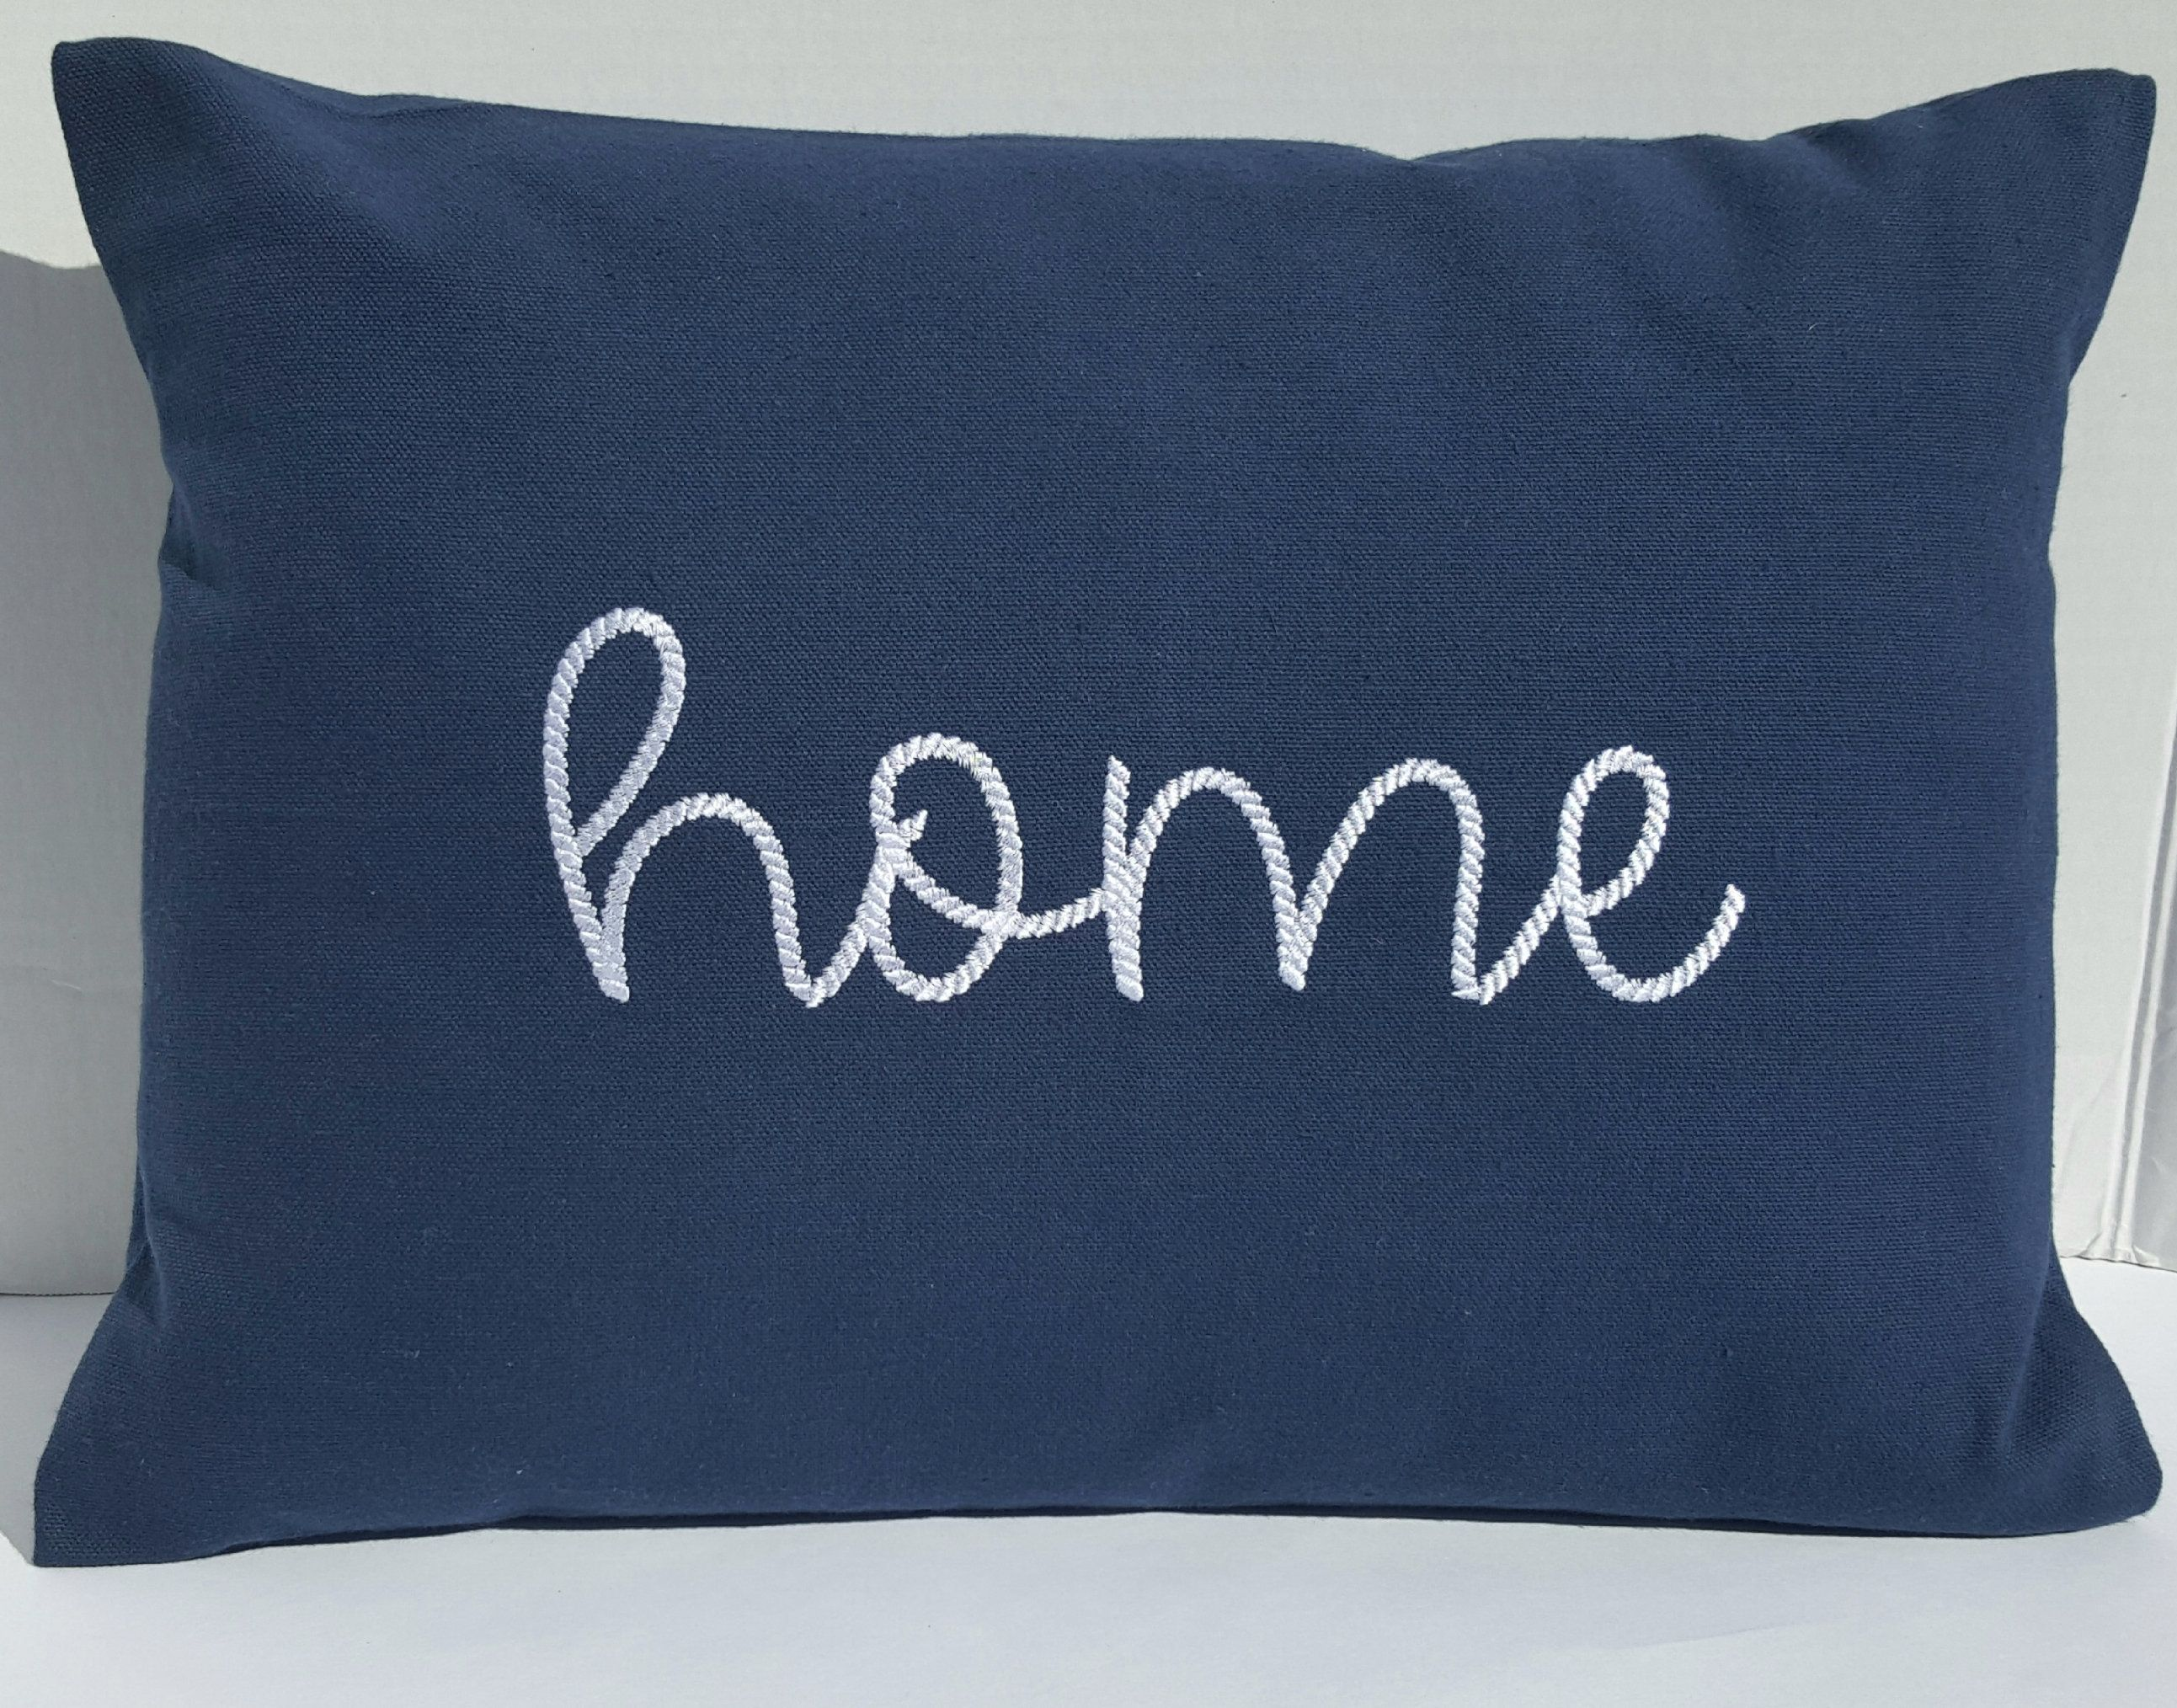 12 X 16 Handcrafted Home Sentiment Pillow Cover Etsy Etsy Pillow Covers Pillows Pillow Covers